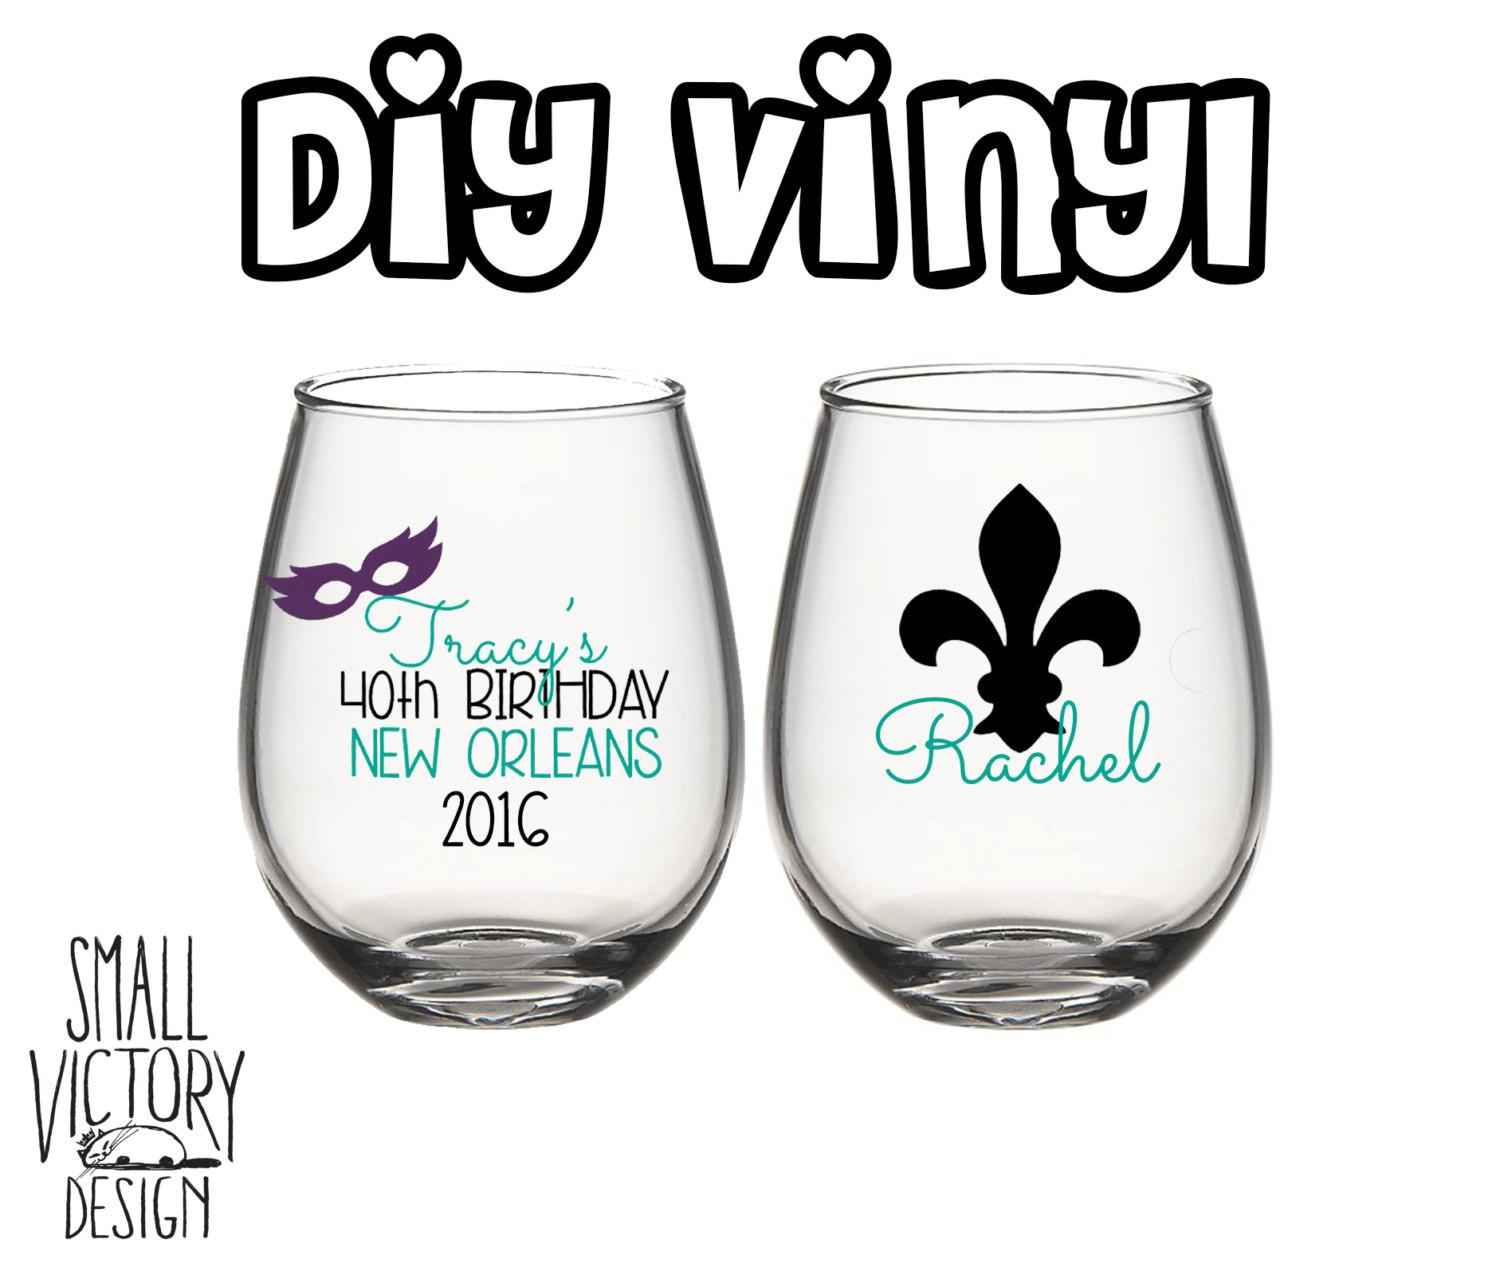 Personalized New Orleans Birthday Vinyl Decals Diy